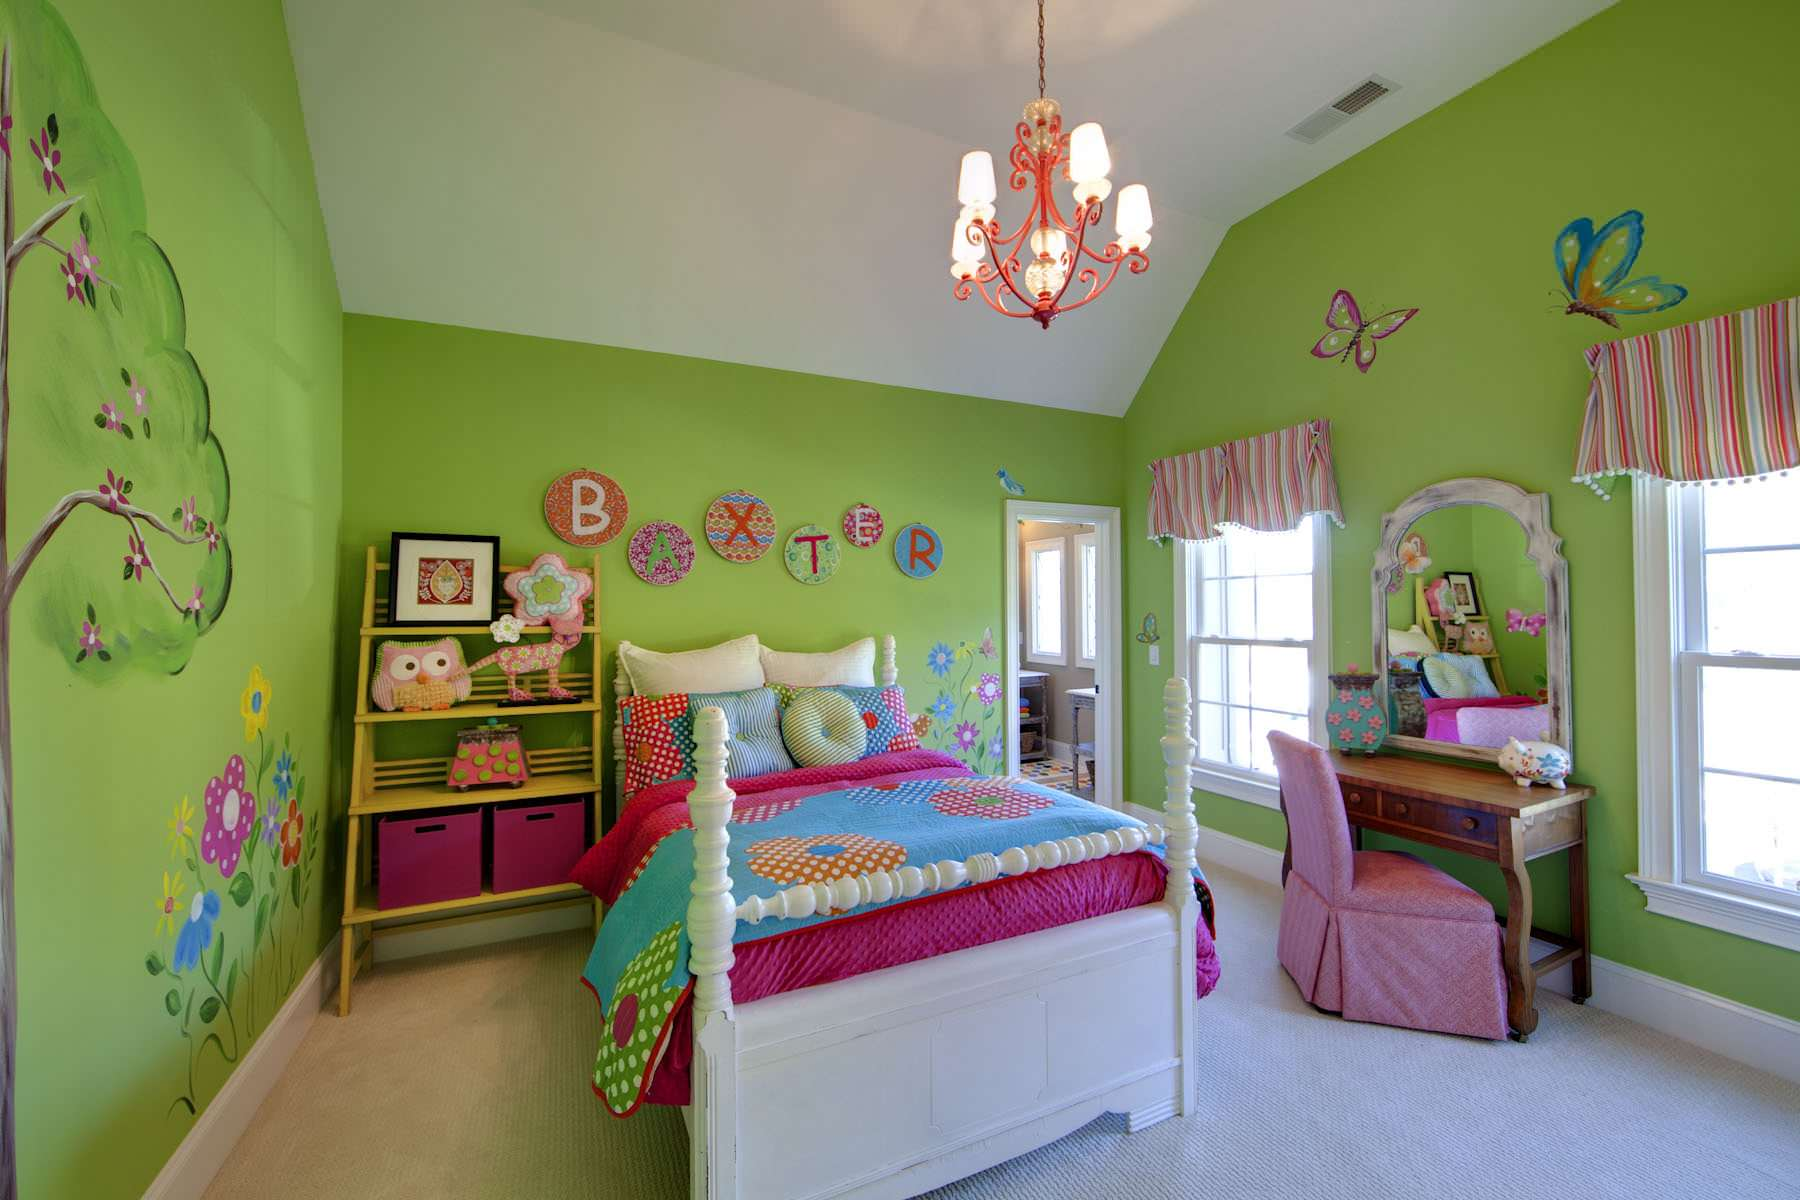 elegant kid' room photo with green wall and red valance